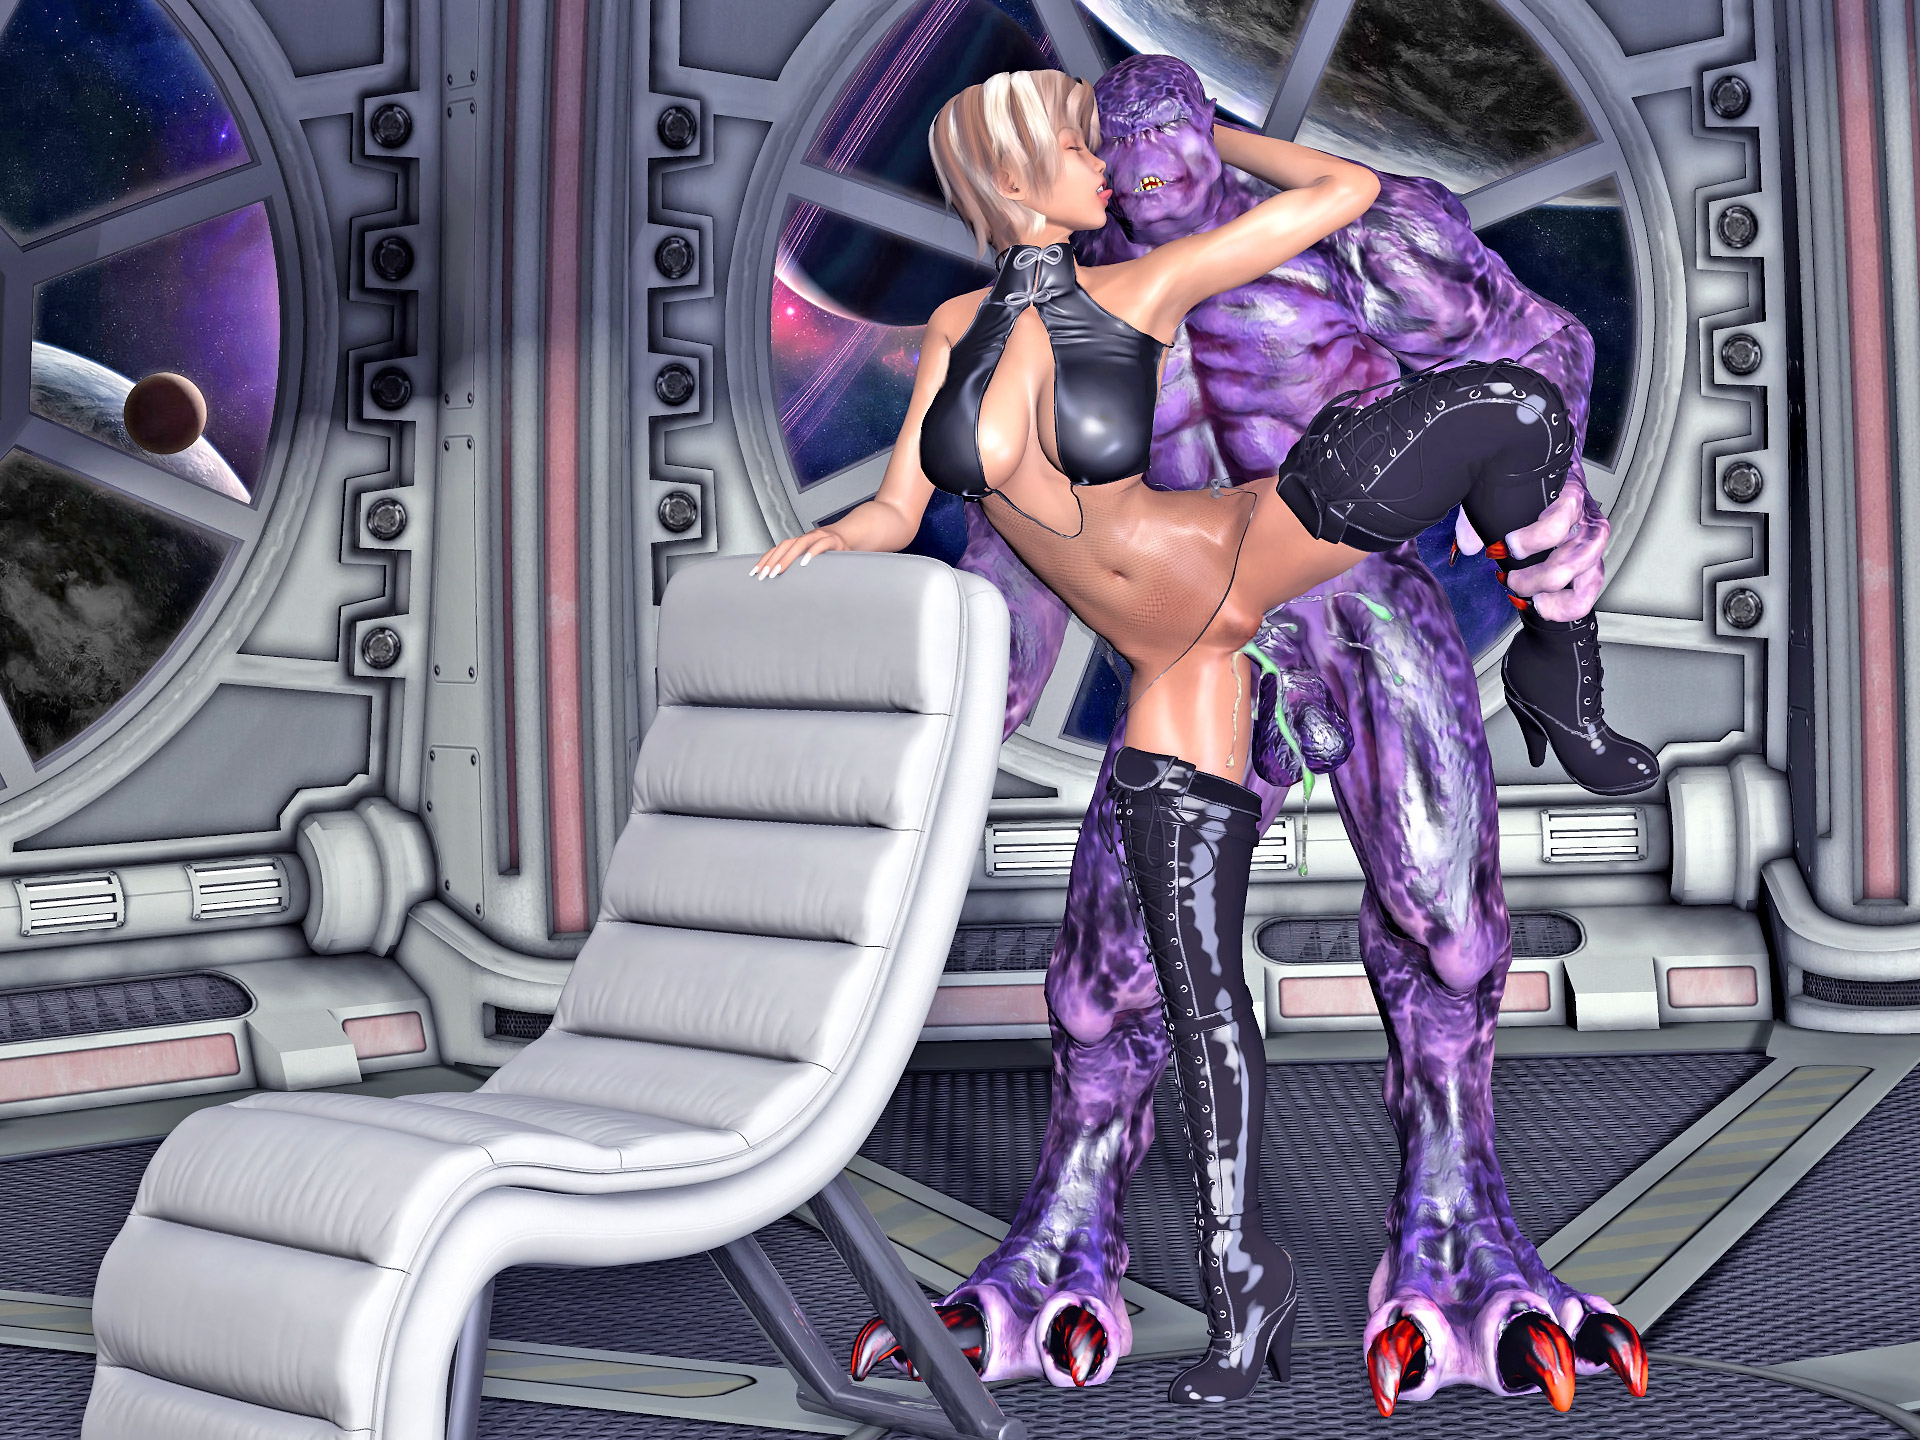 Sexynude toon fucked by monster aliens pic hentai photos